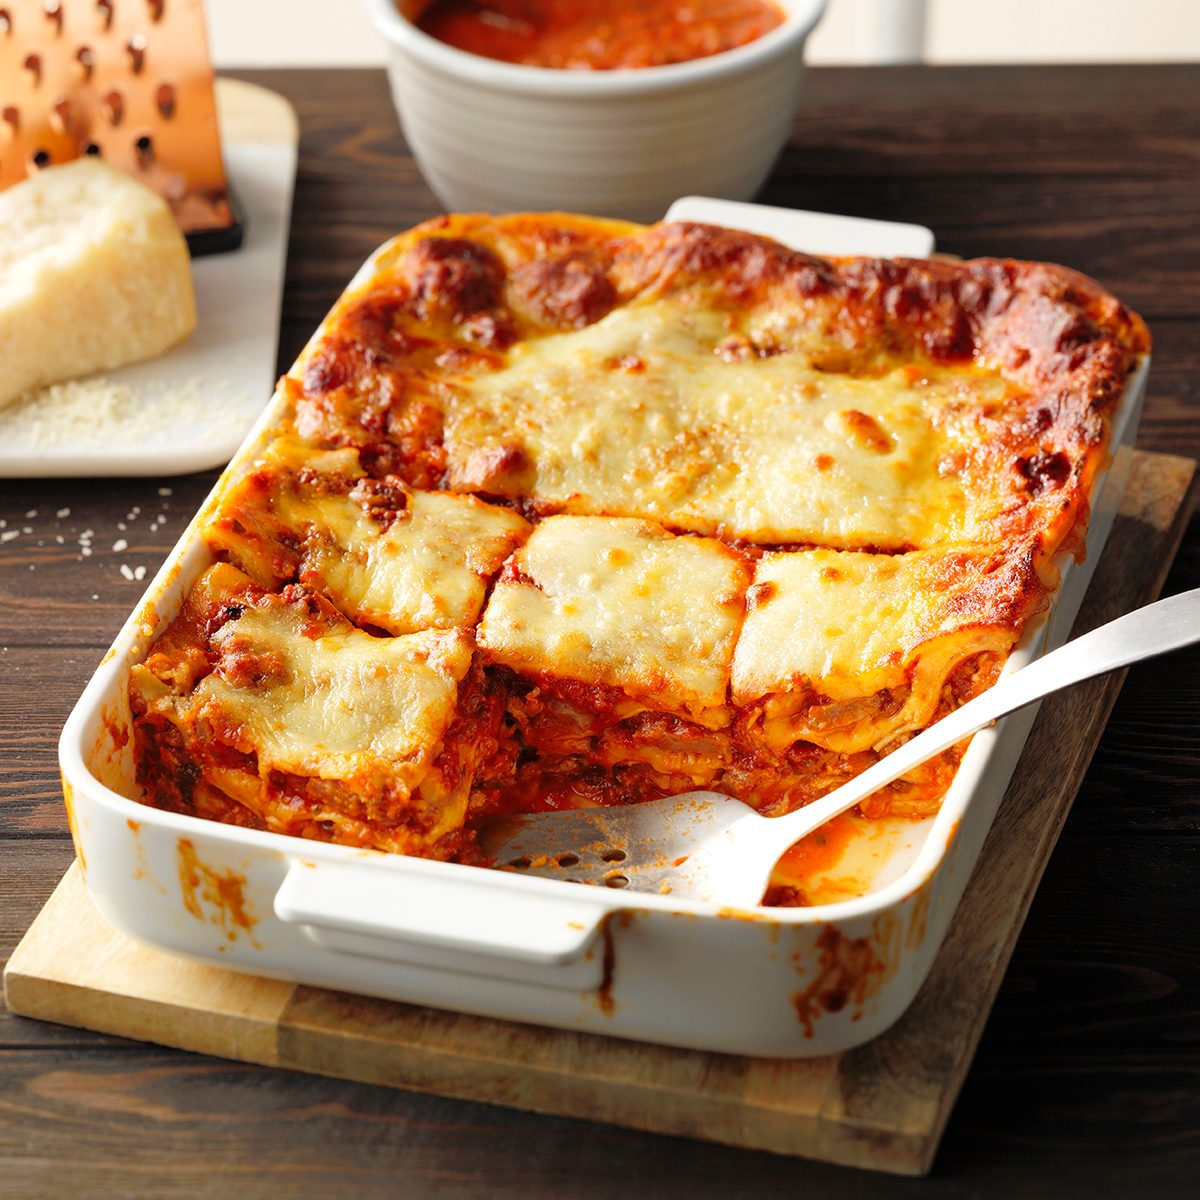 A big pan of The Best Ever Lasagna